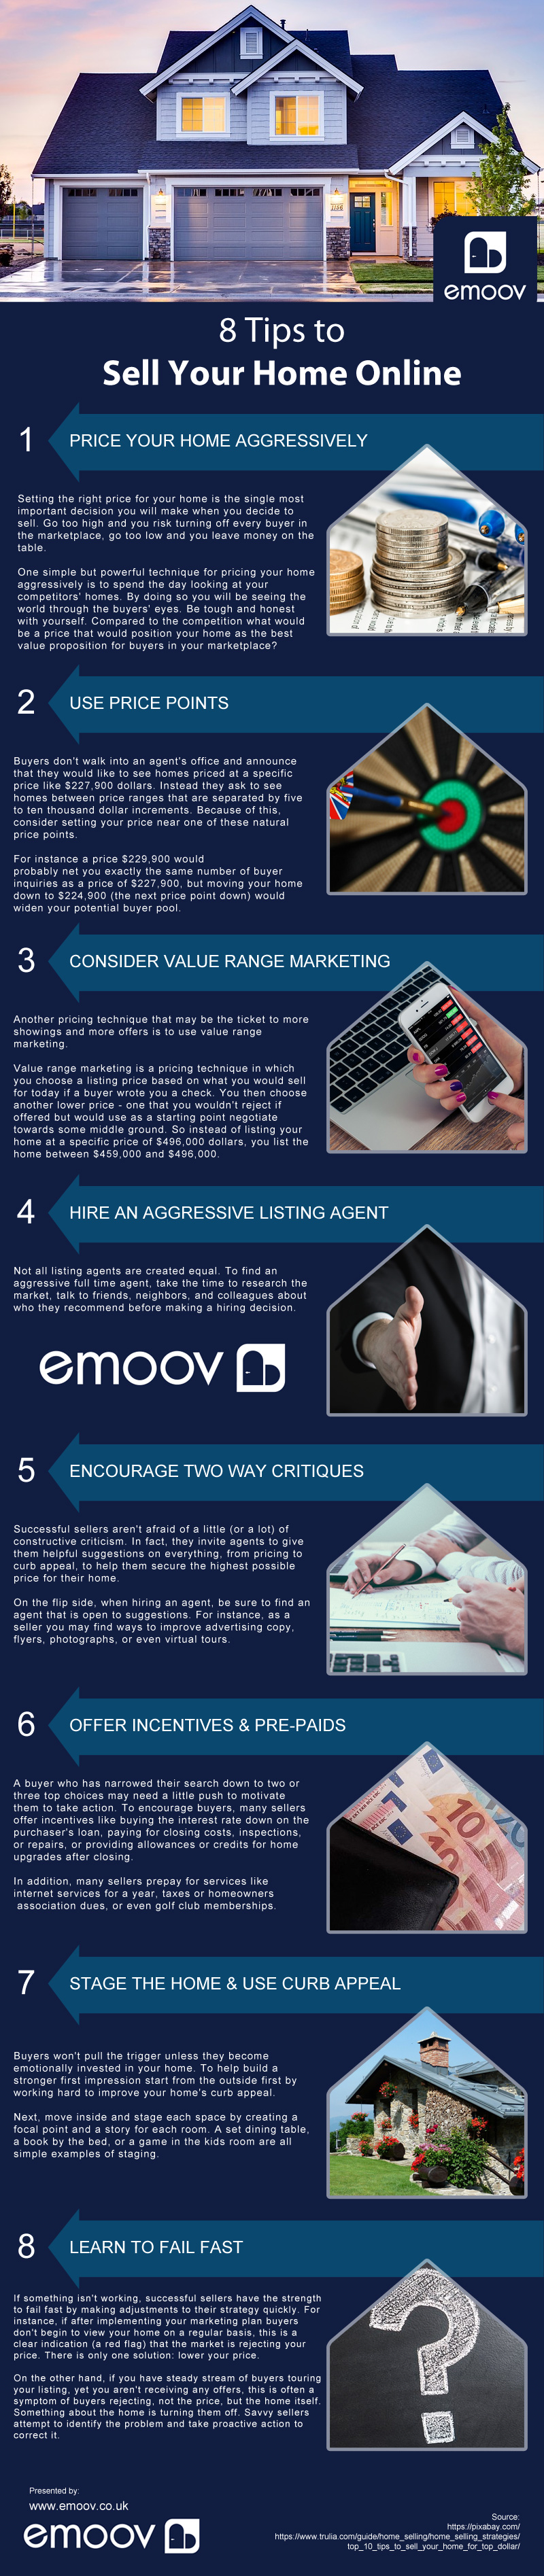 8 Tips To Sell Your Home Online Things To Sell Infographic